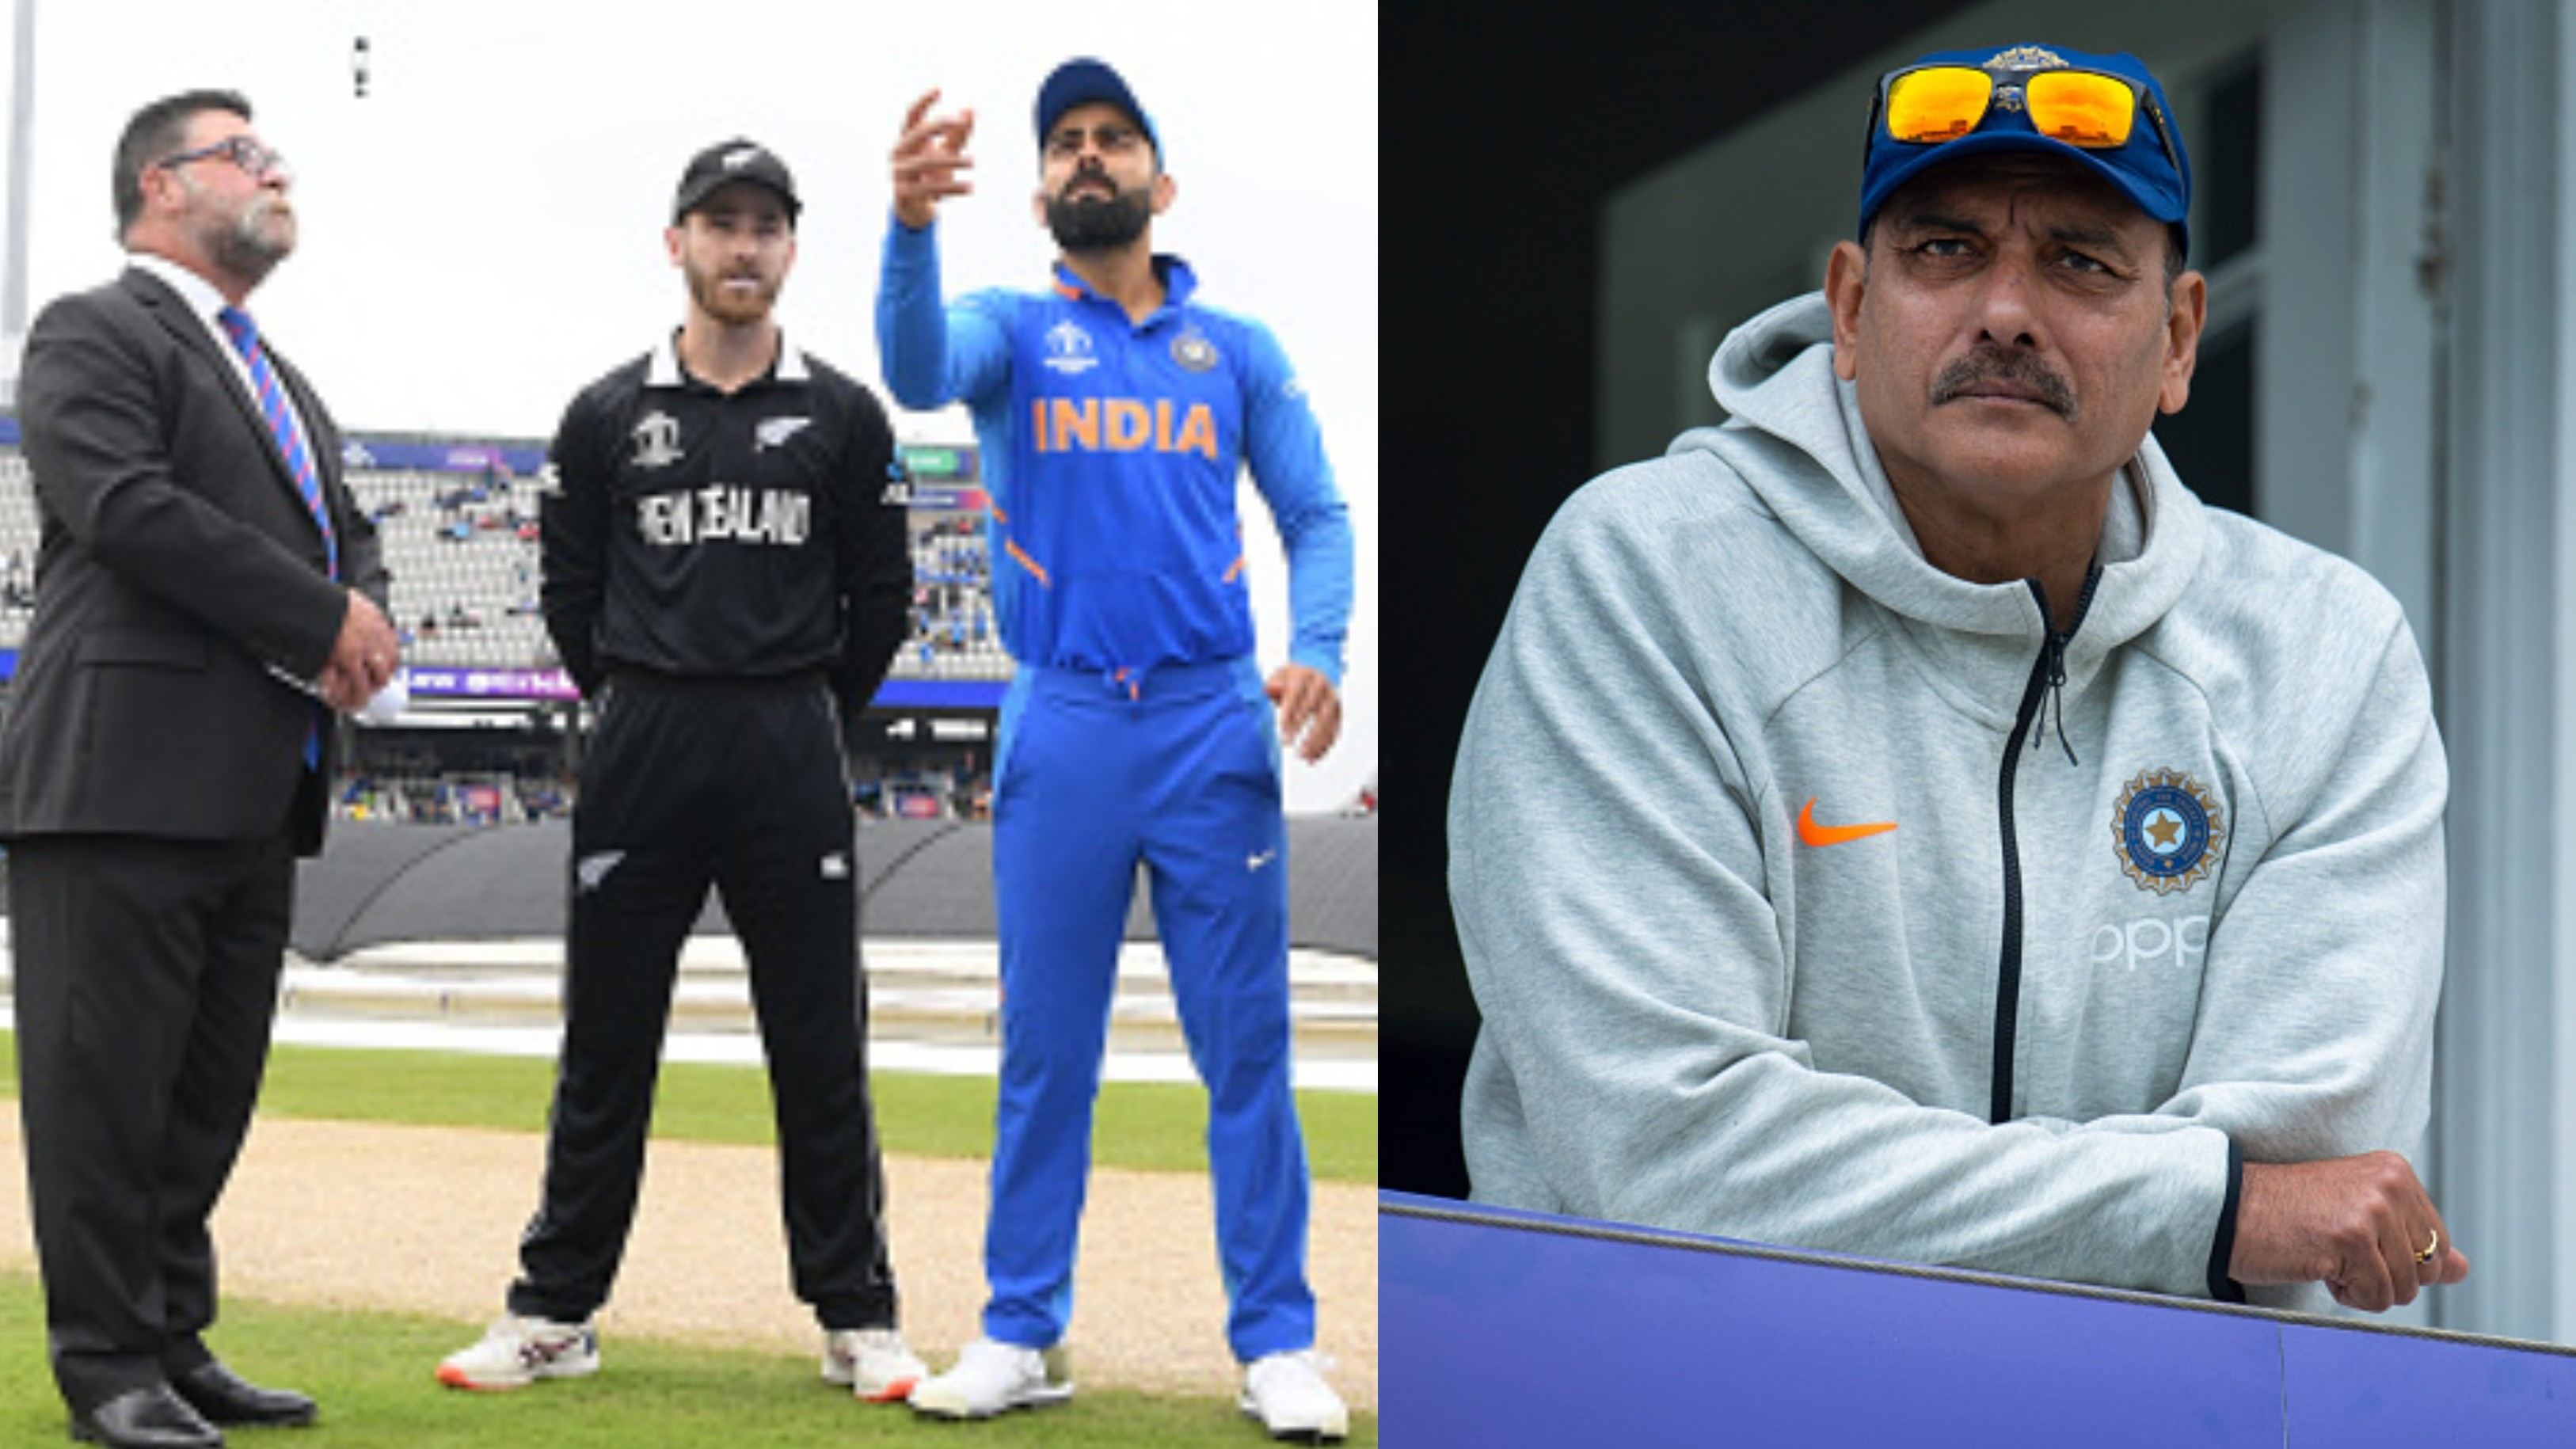 CWC 2019: Taking semi-final against New Zealand as just another game, says India coach Ravi Shastri